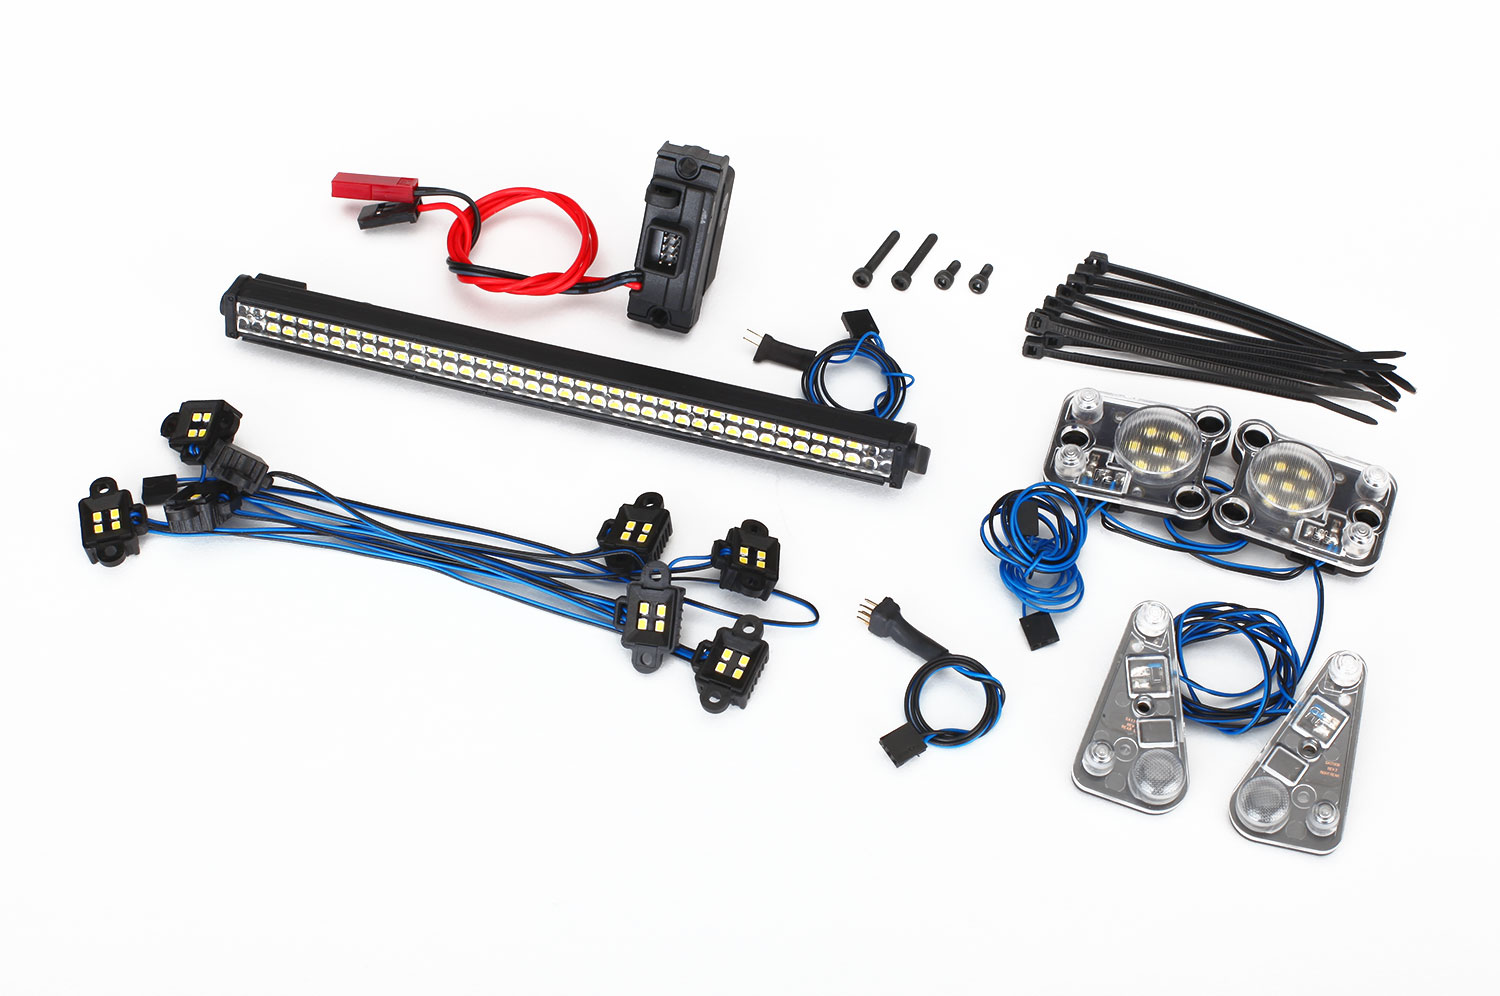 LED LIGHT SET, COMPLETE TRX-4 - WATERPROOF #8030